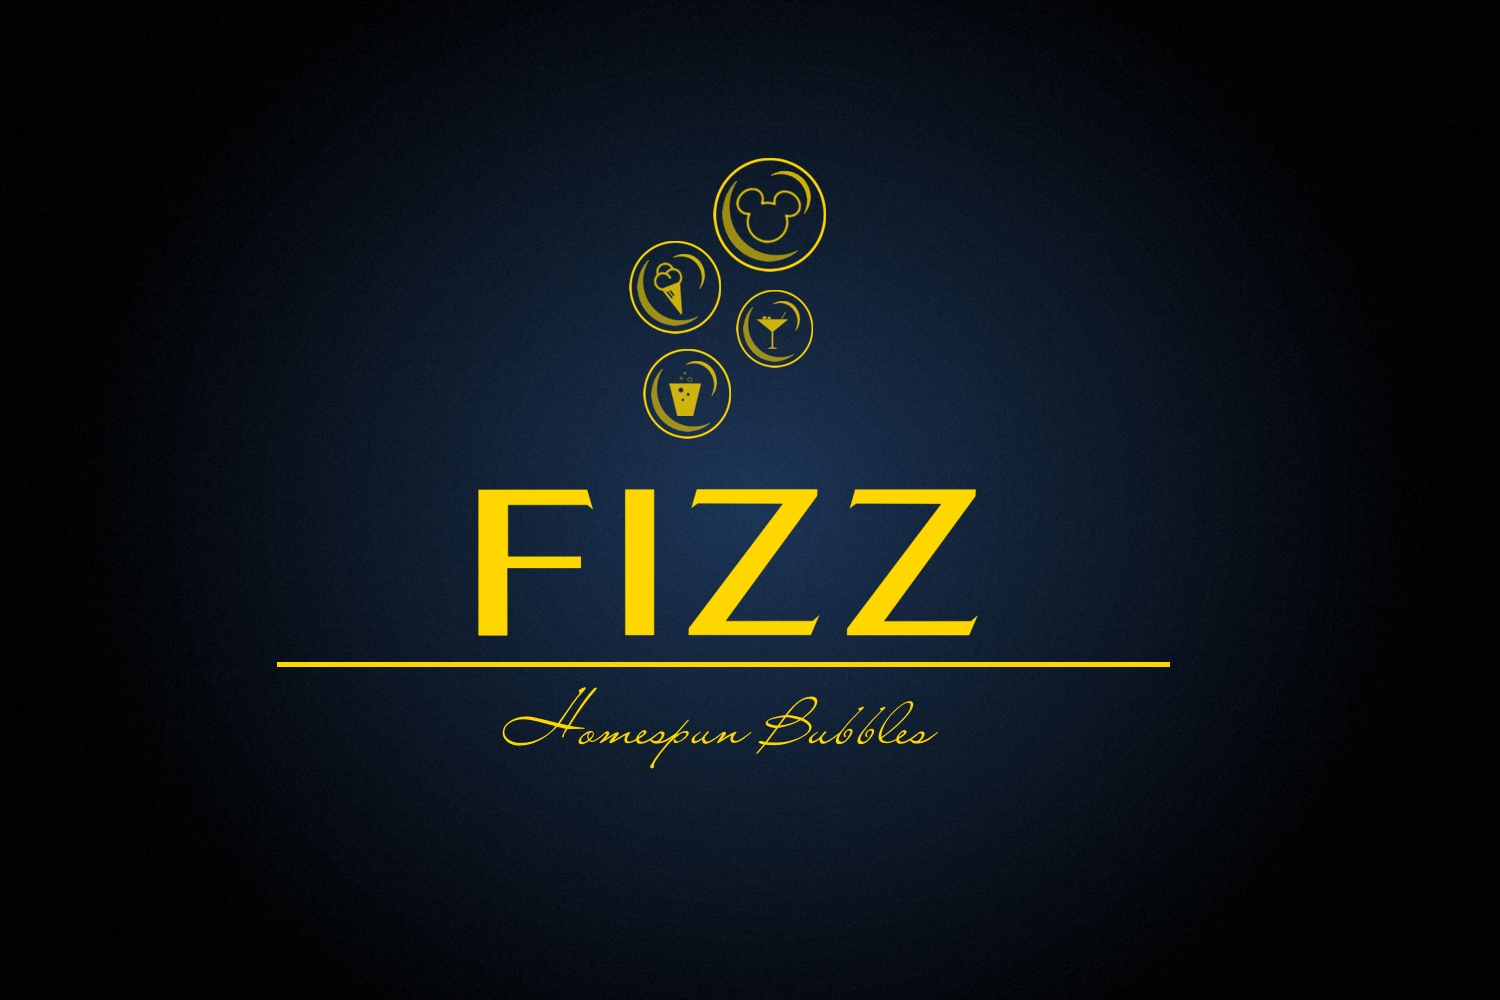 Logo Design by Q_Division_Designs - Entry No. 74 in the Logo Design Contest Unique Logo Design Wanted for Fizz.